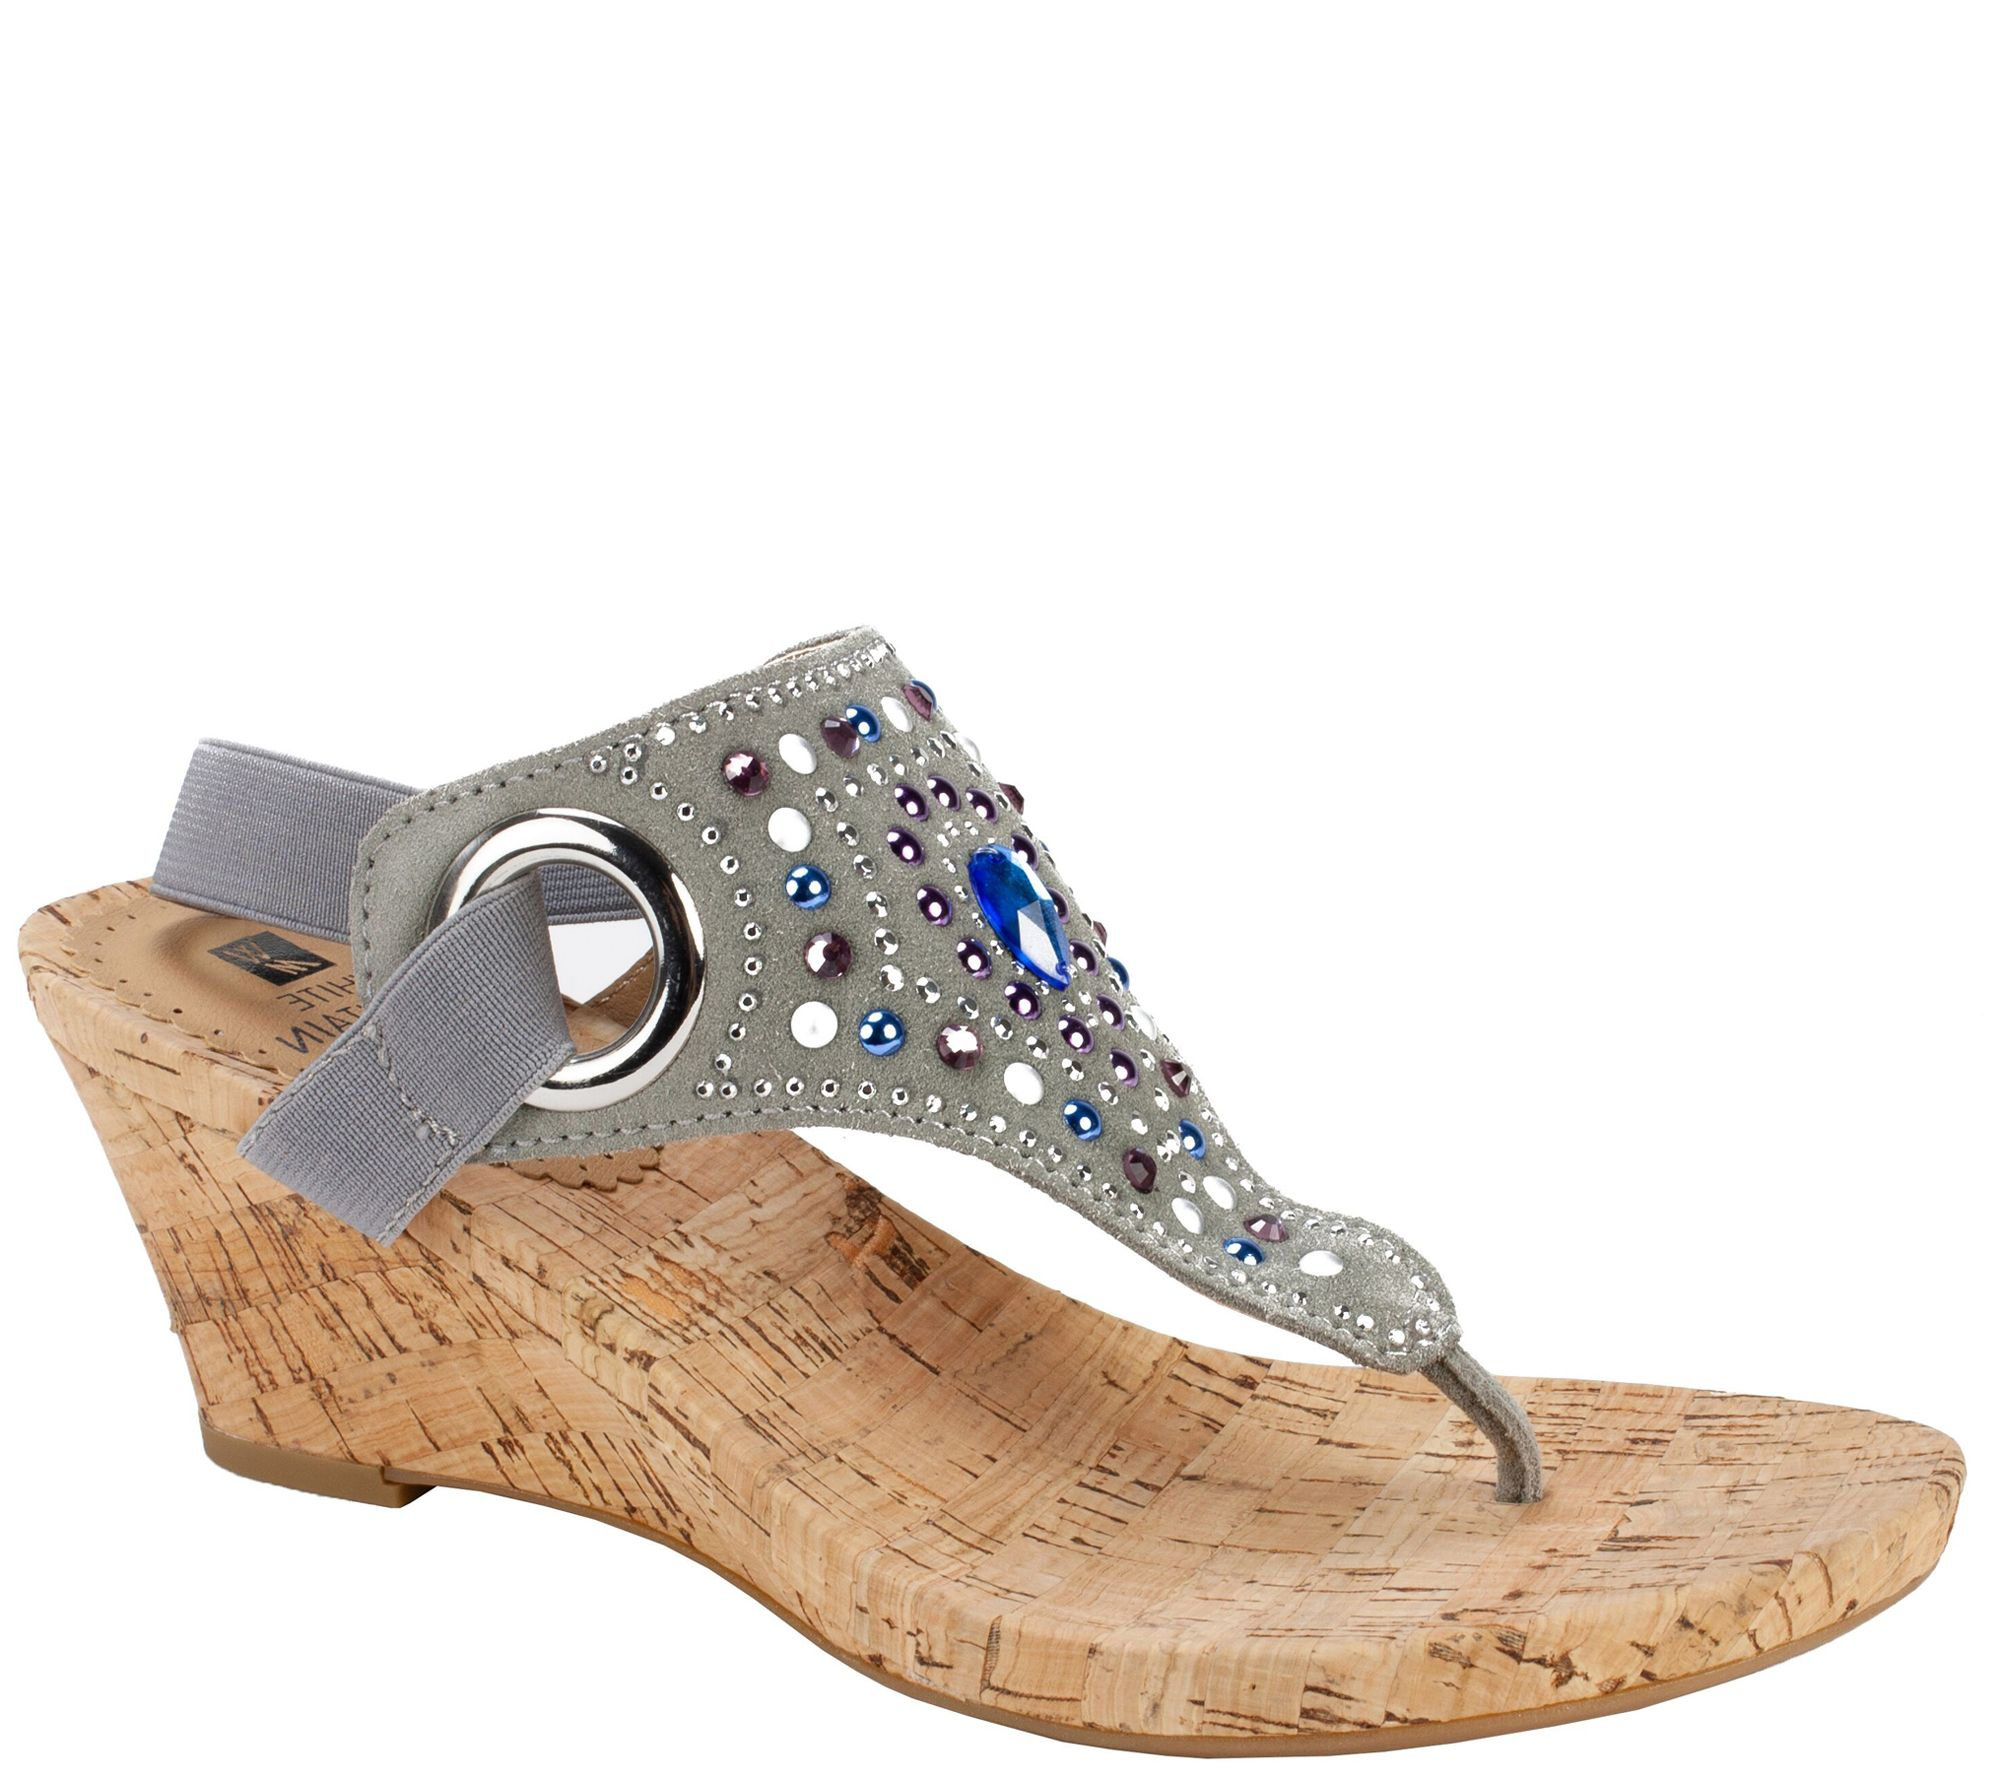 4b625c81c319f3 White Mountain Jeweled Thong Wedge Sandals -Adeline - Page 1 — QVC.com